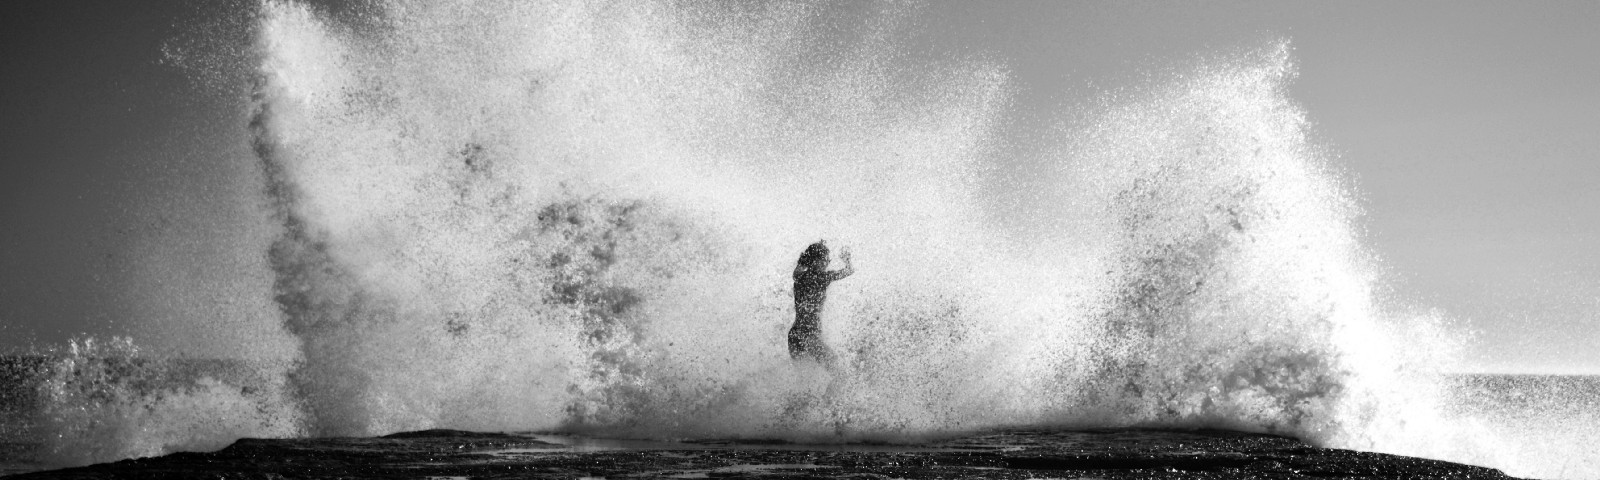 Gigantic wave crashing over person, black and white, nostalgic feel